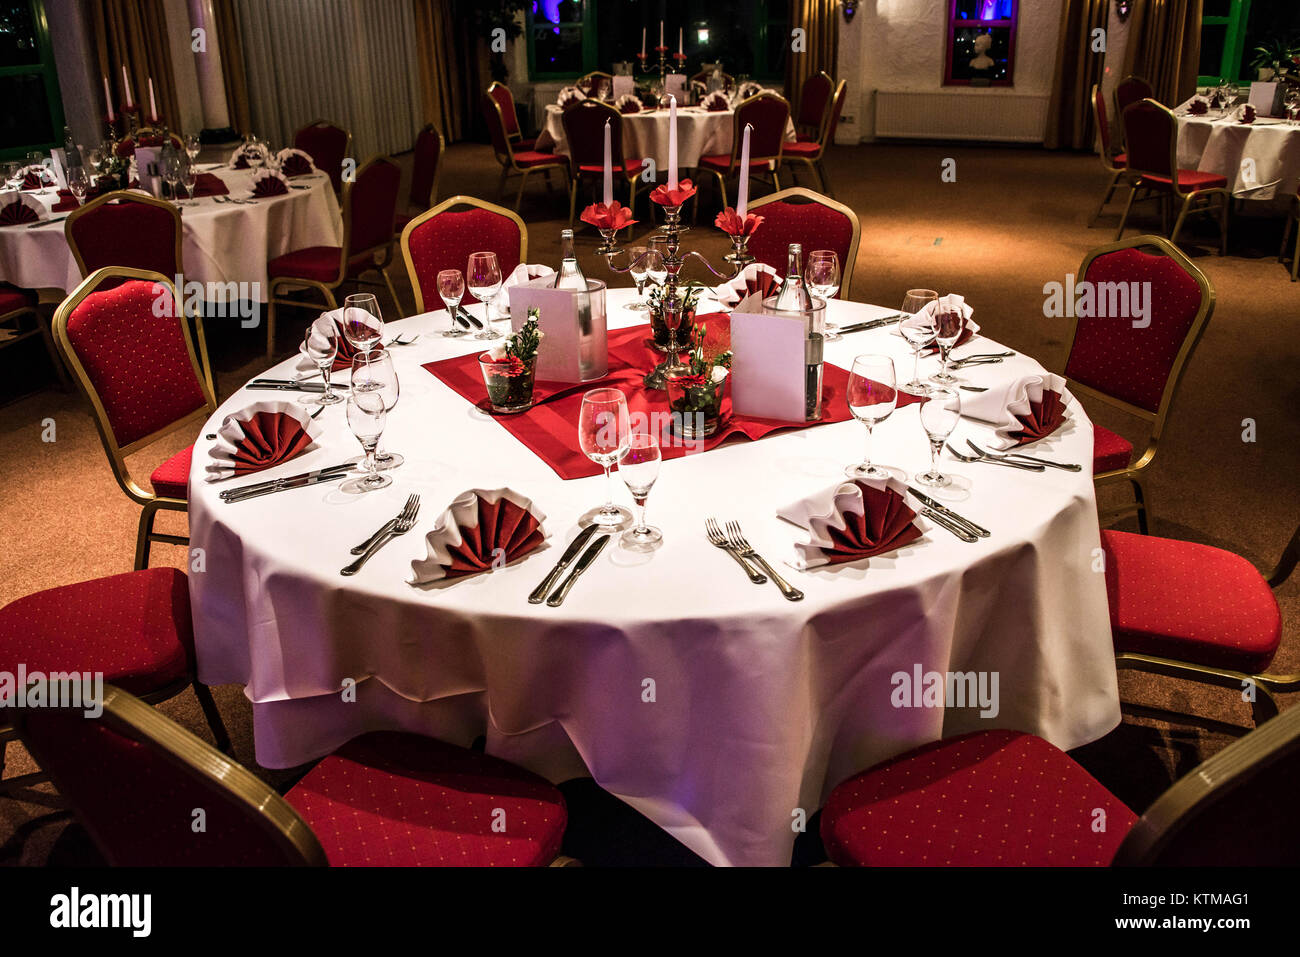 Banquet With Red Table Setting Red Tablecloth White